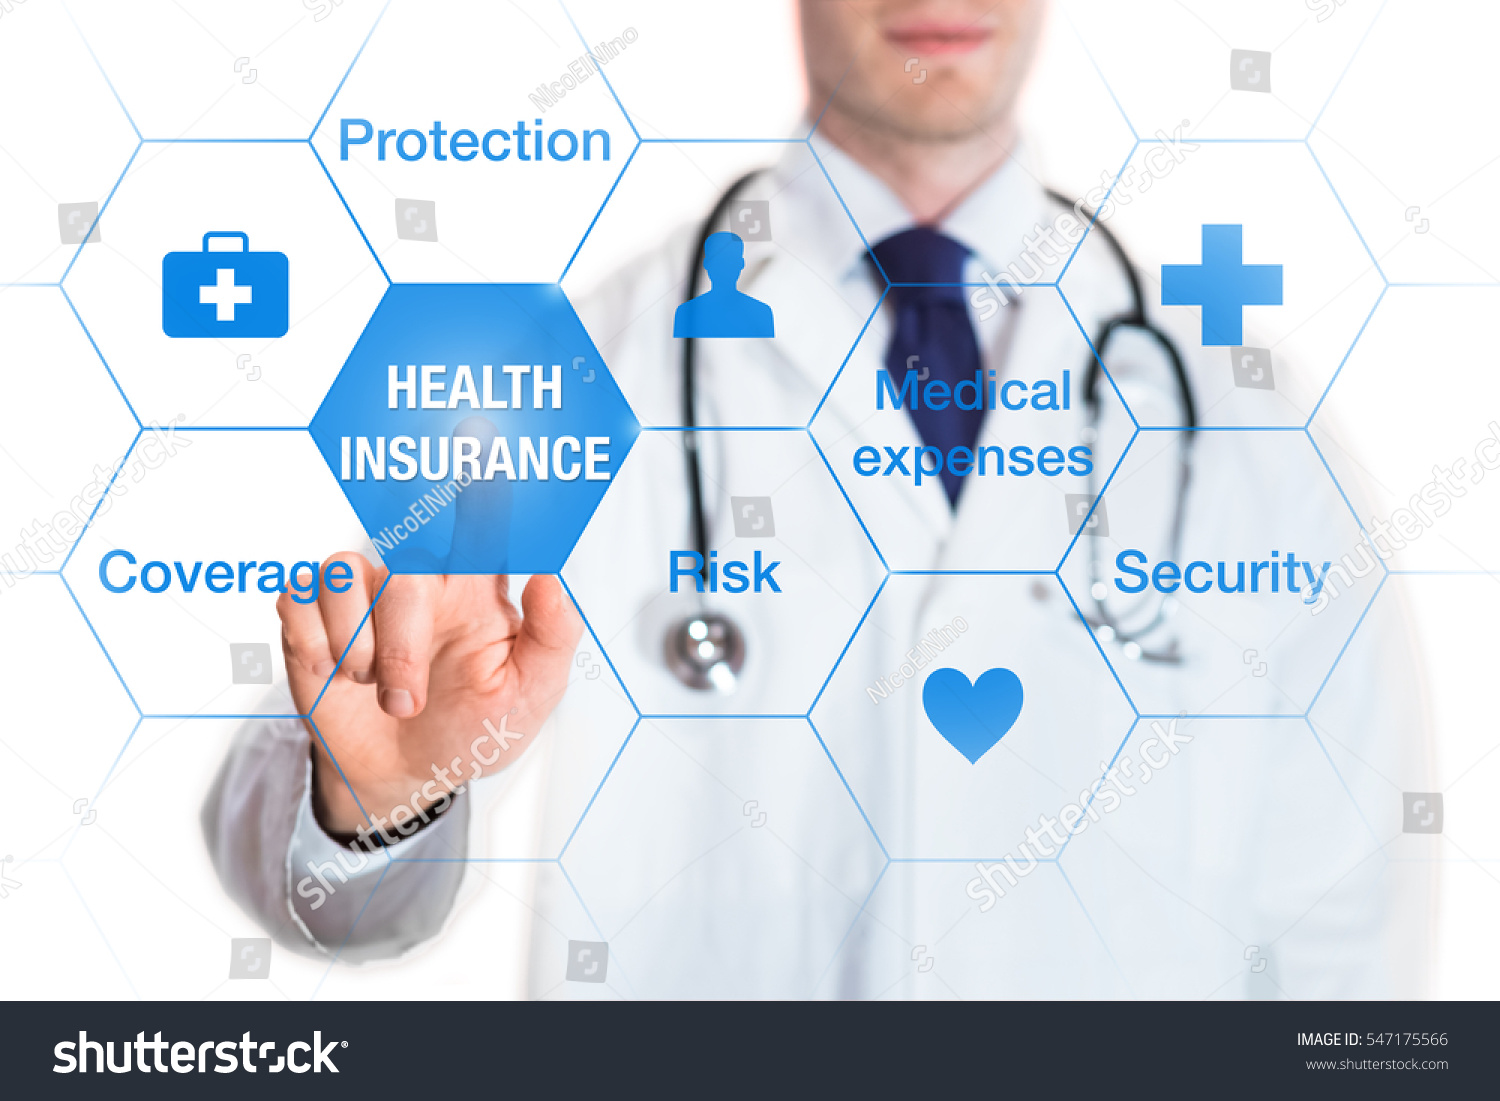 Health Insurance Concept Words Coverage Protection Stock. Pediatric Dentist Allen Tx Best Straight Hair. Should I Buy A Tempurpedic Mattress. 401k For Small Businesses Microsoft Etl Tools. Allstate Insurance Austin Tx. Neiman Marcus Cafe Tysons Duct Cleaning Costs. Saas Software Companies Guangzhou Best Hotels. What Is A Financial Planner Wet And Reckless. What Does A Logistics Coordinator Do